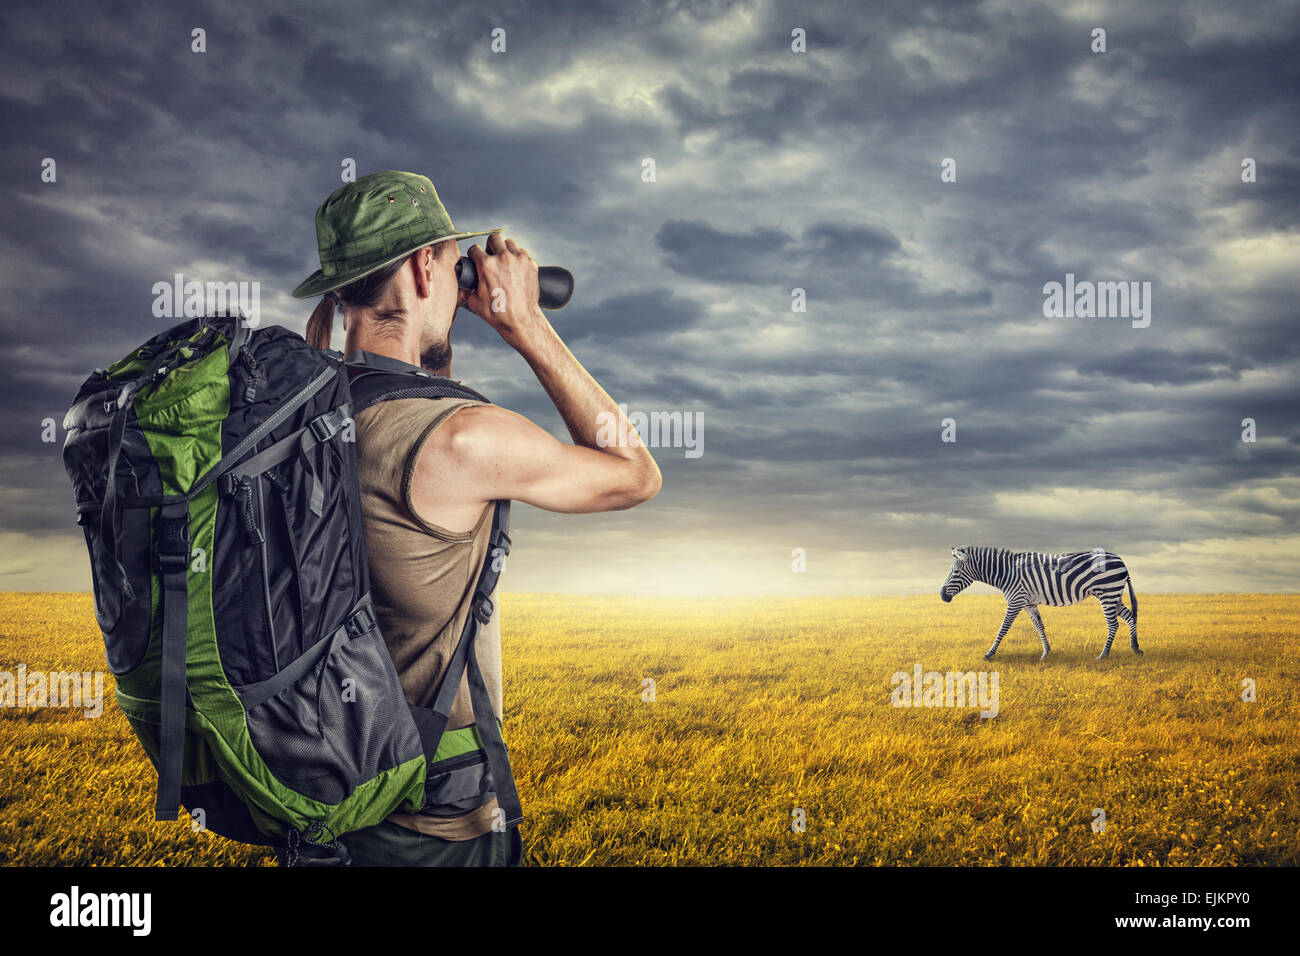 Man with binocular watching zebra in savanna at sunset sky with dramatic clouds - Stock Image